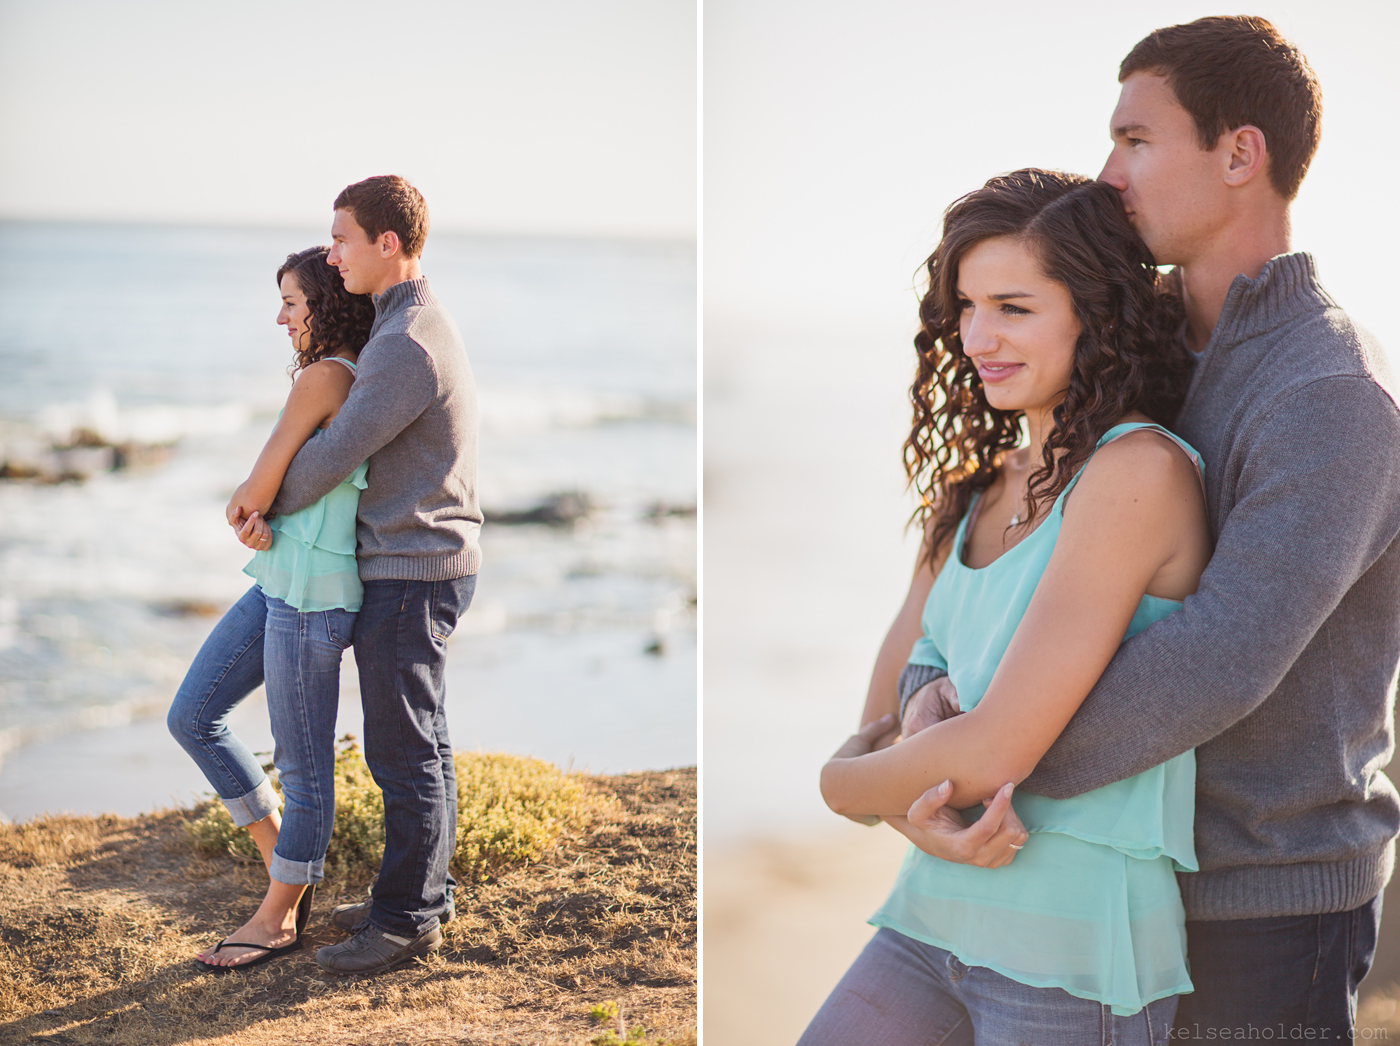 san_luis_obispo_beach_engagement_by_kelsea_holder004